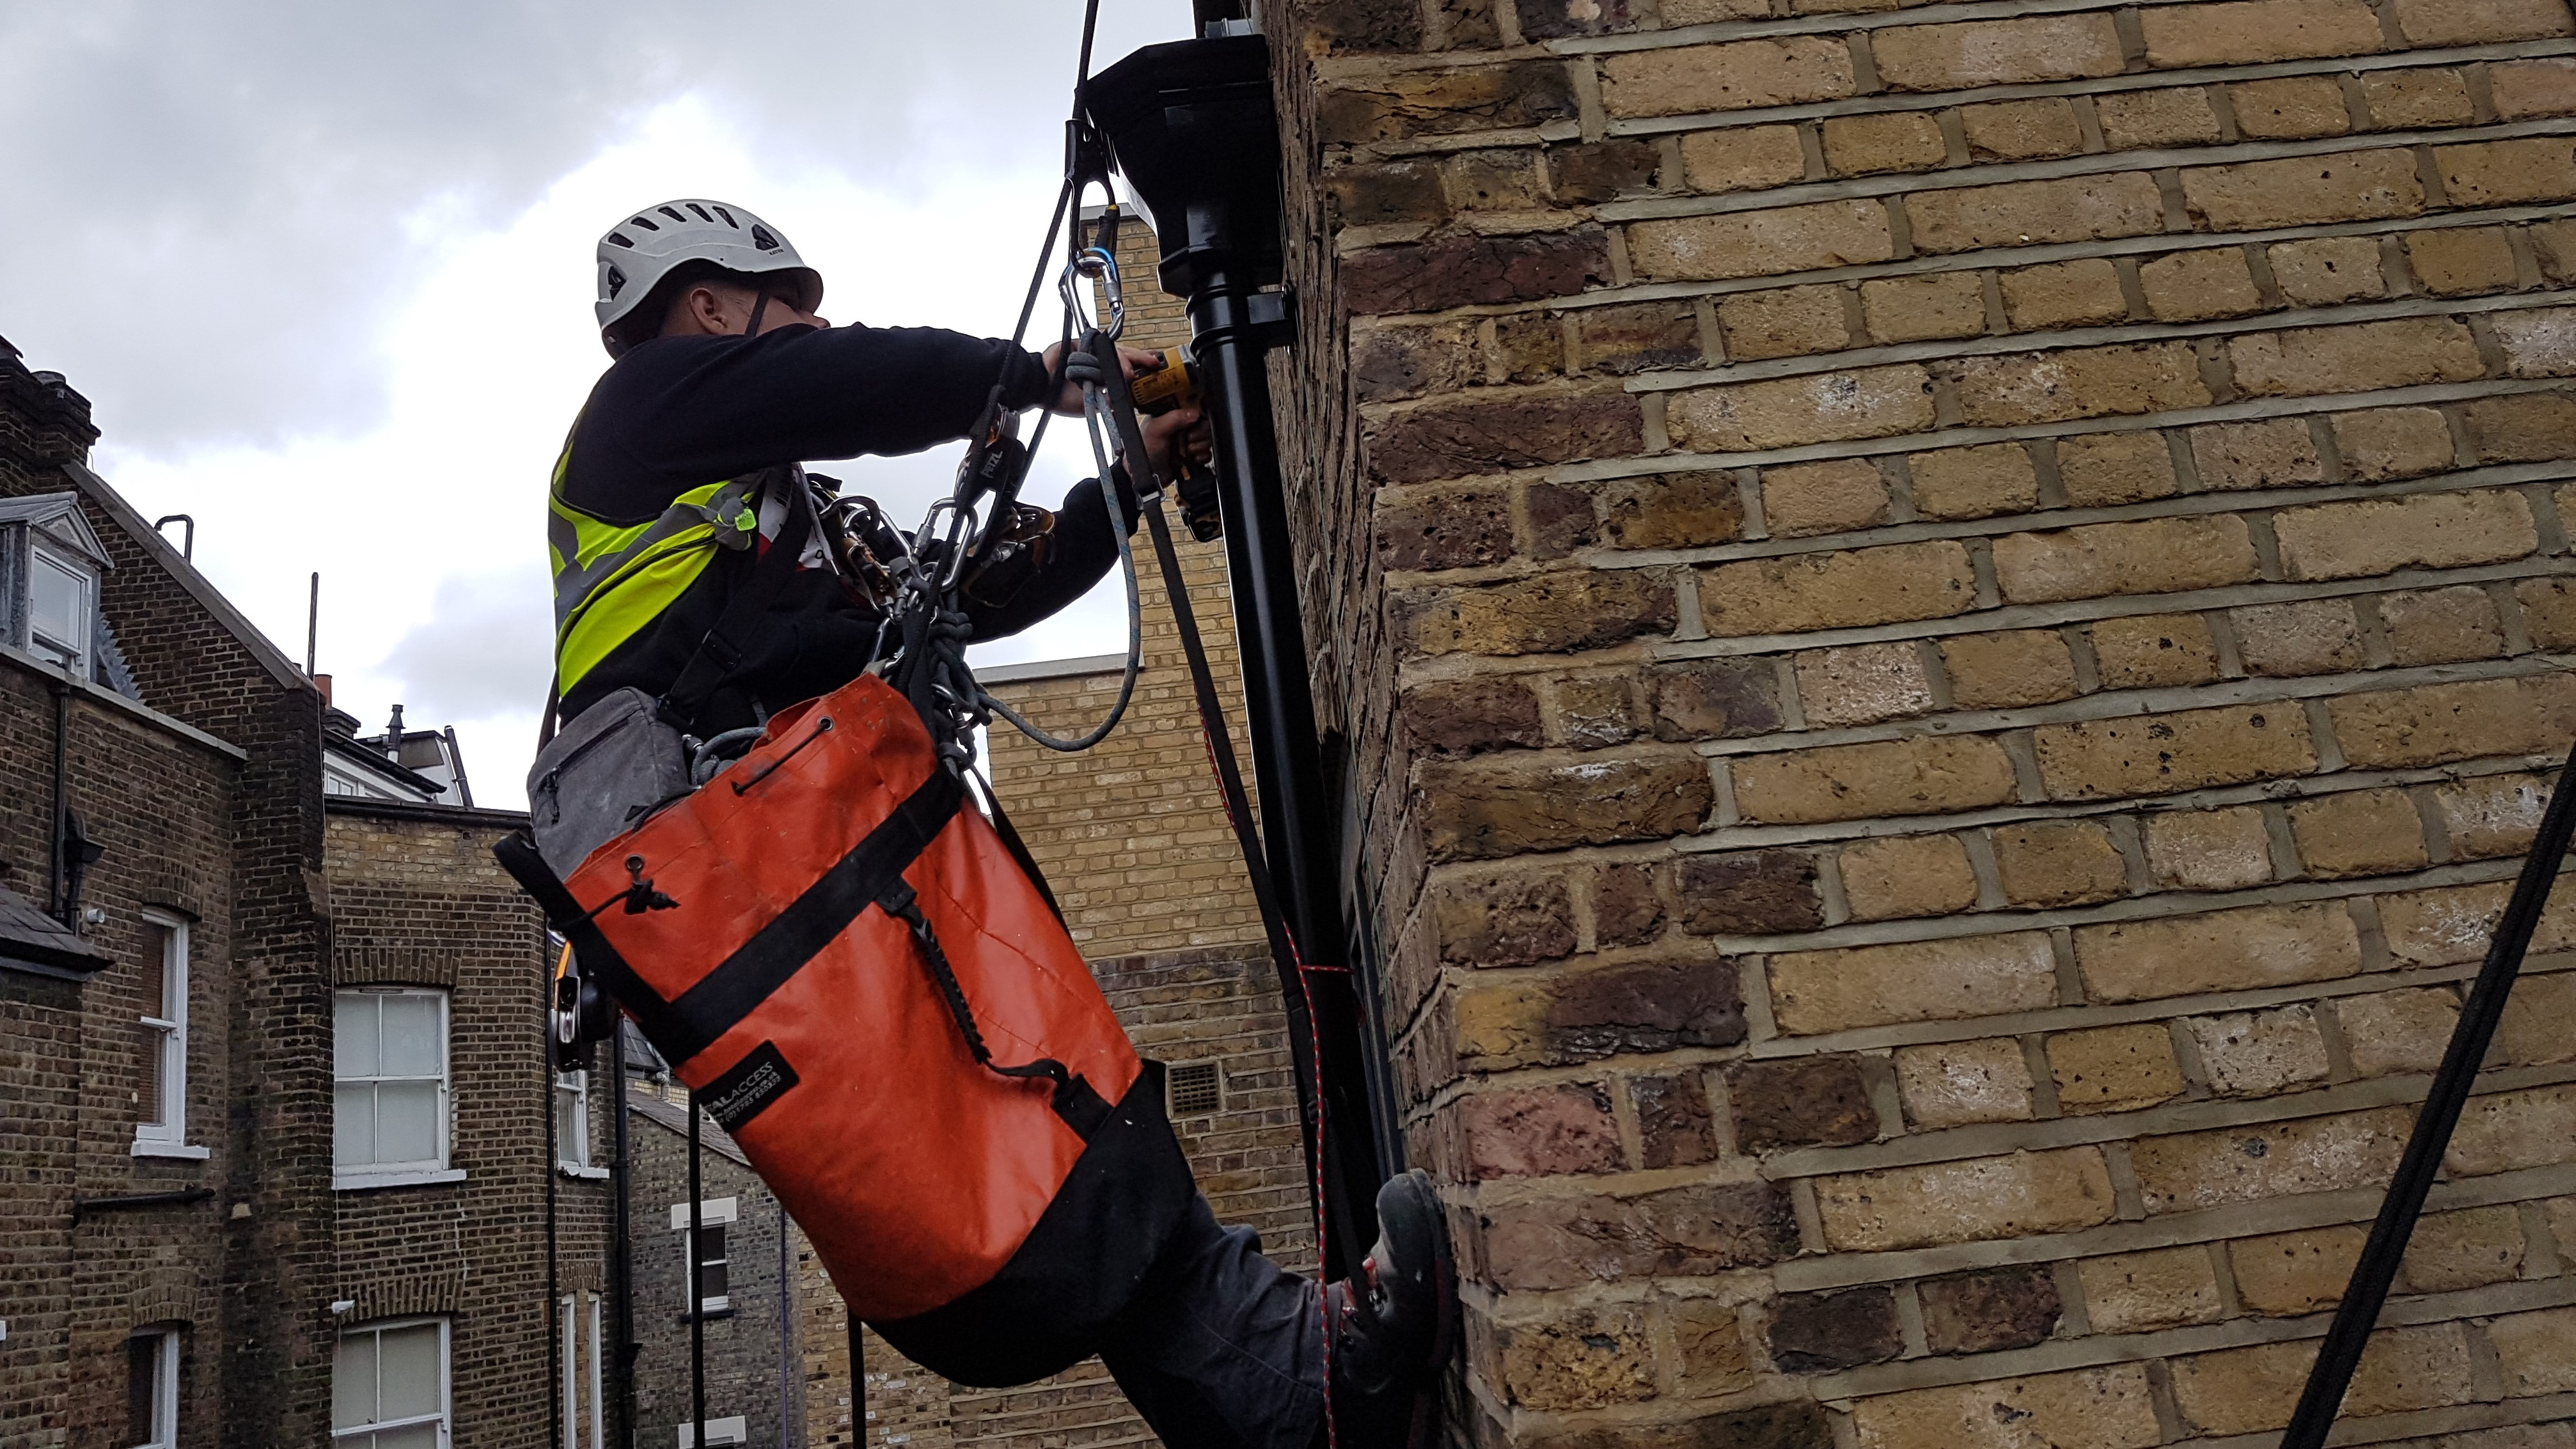 abseiling down pipe installation